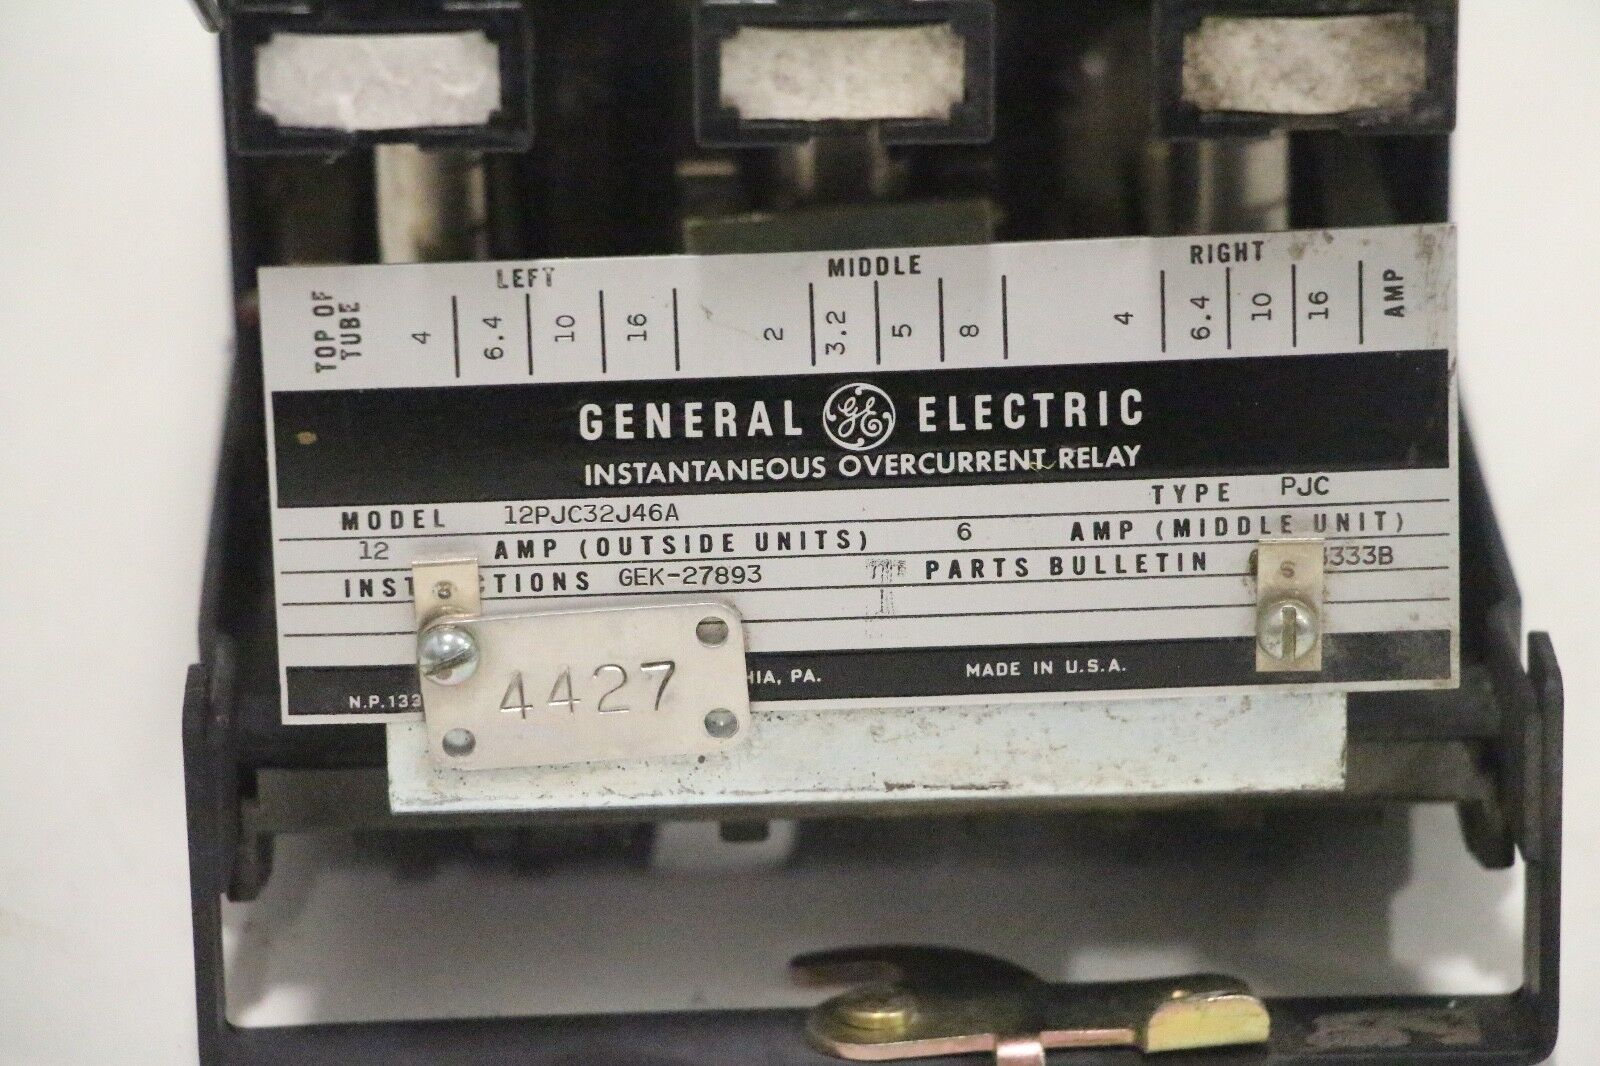 Ge General Electric 12pjc32j46a Instantaneous Overcurrent Relay Ebay Electrical Norton Secured Powered By Verisign